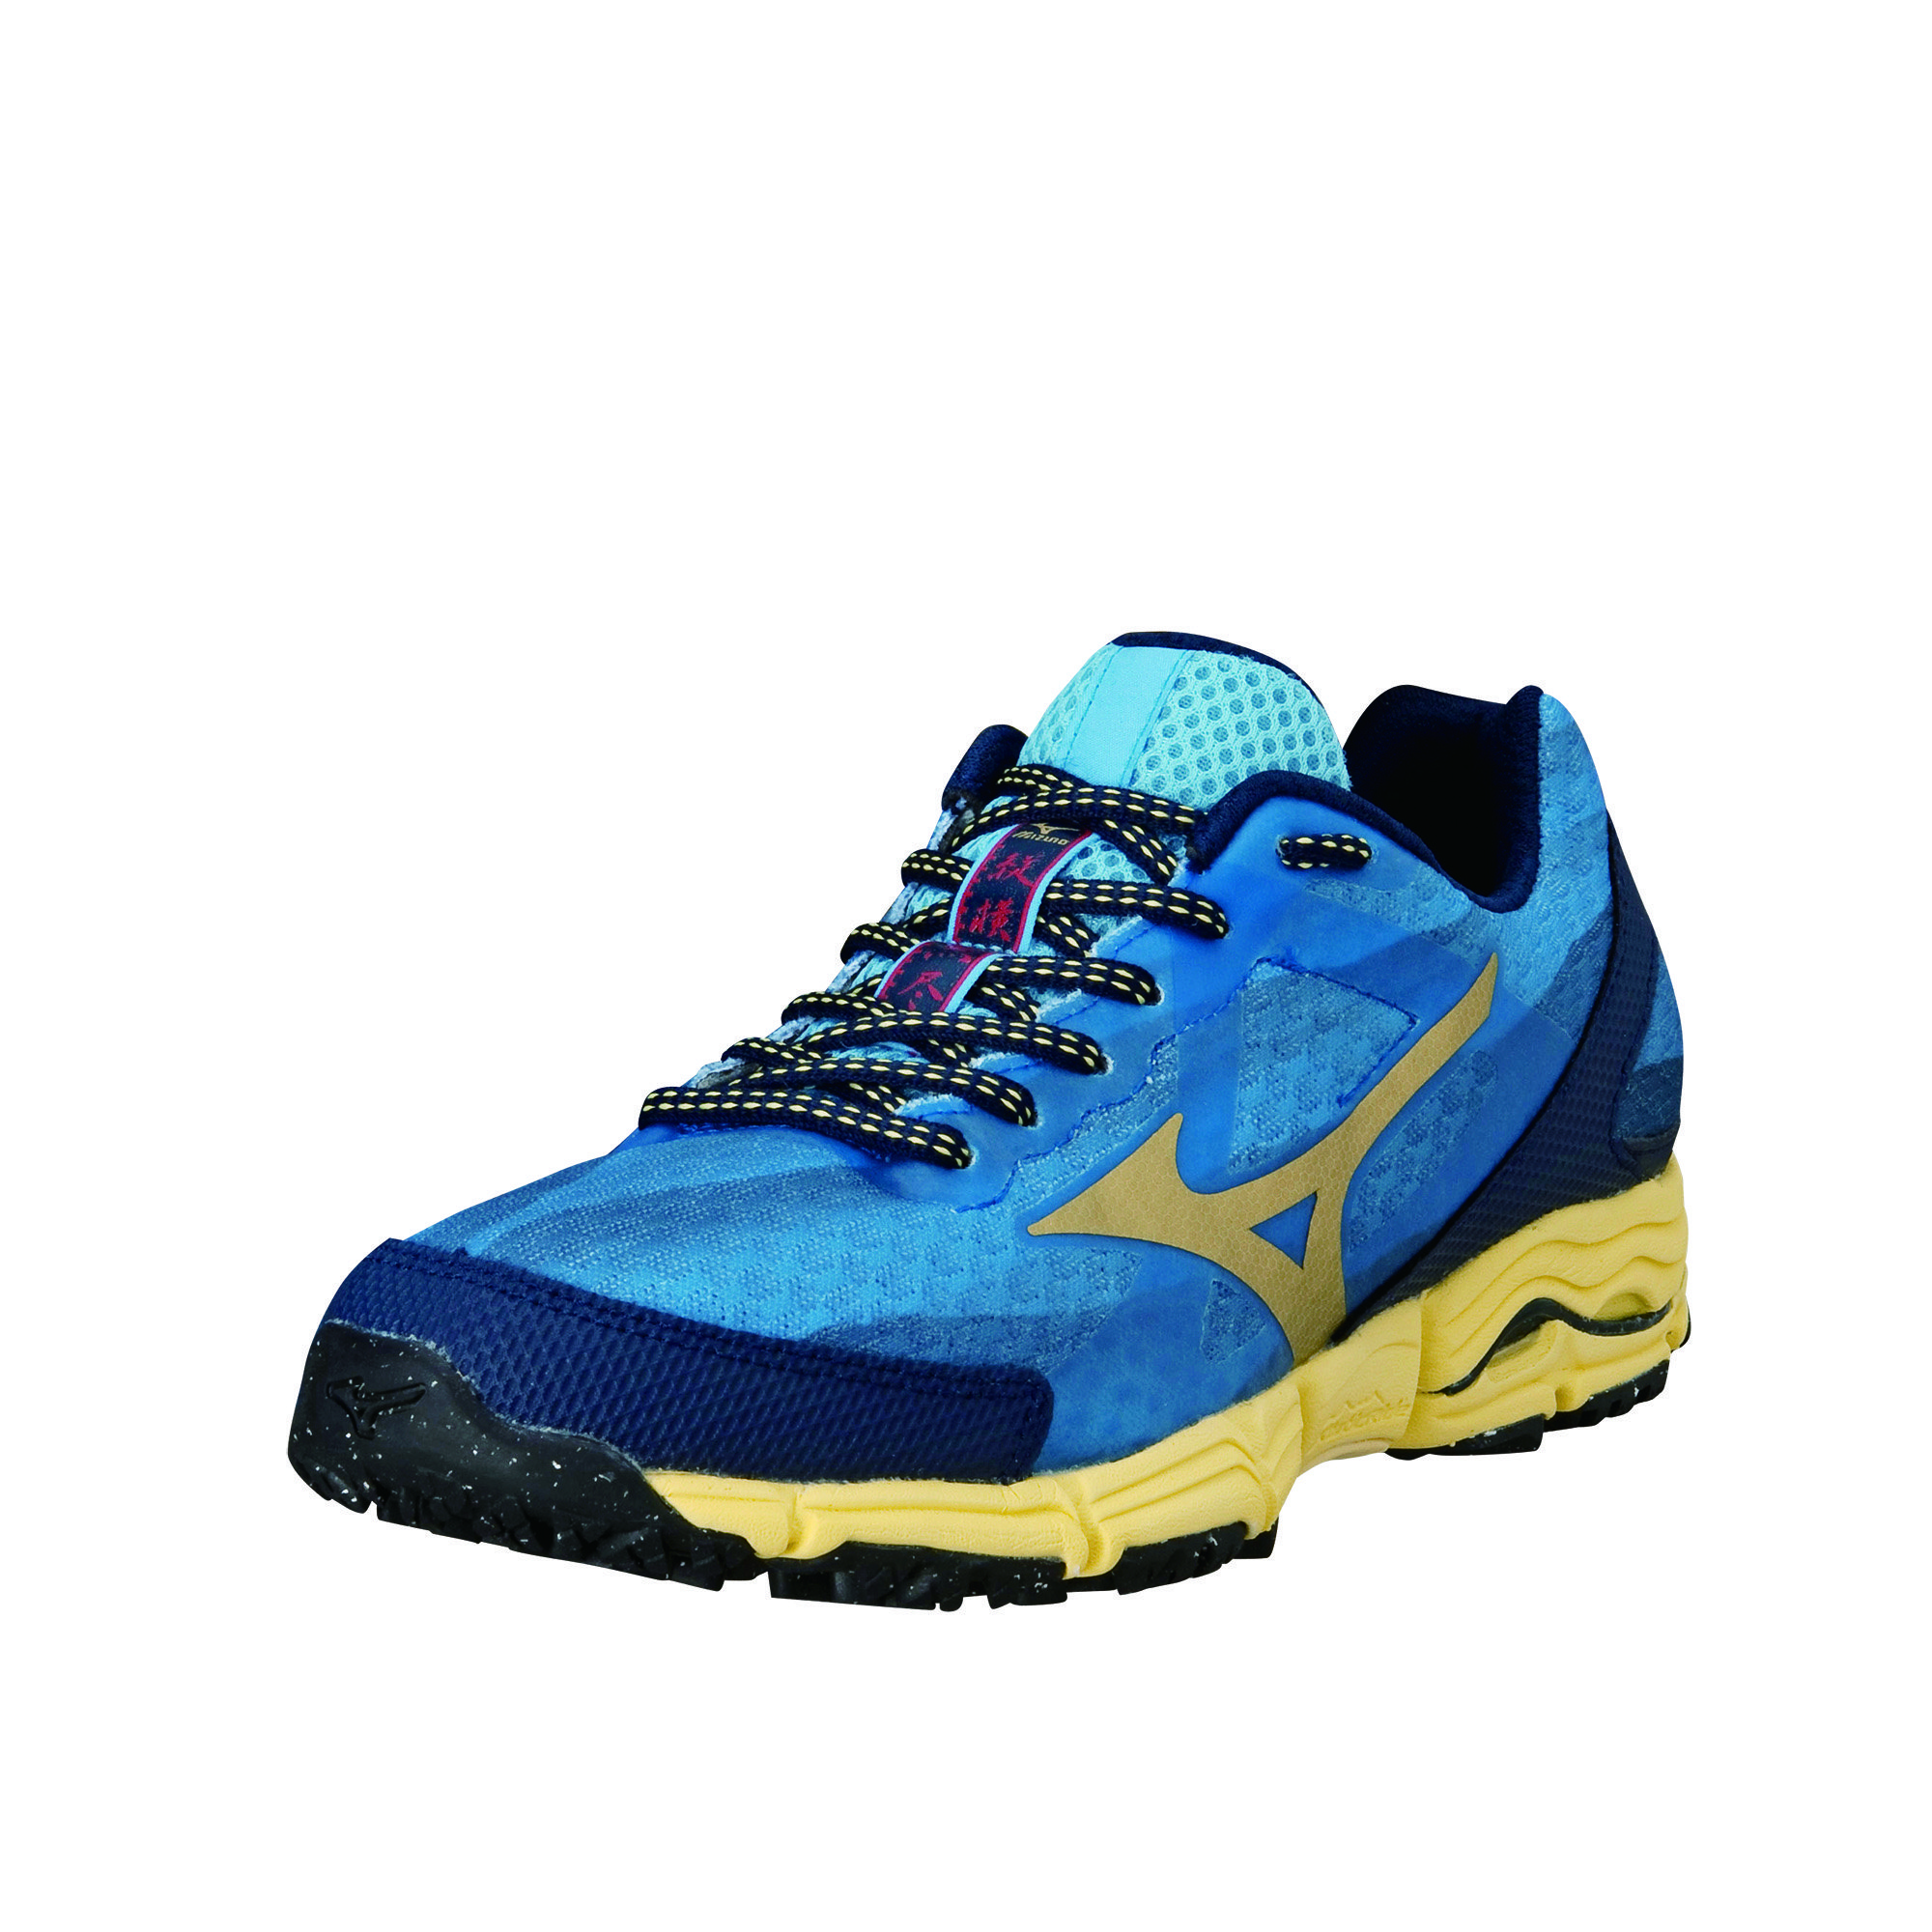 Mizuno Lady Wave Mujin in Bklau Gelb